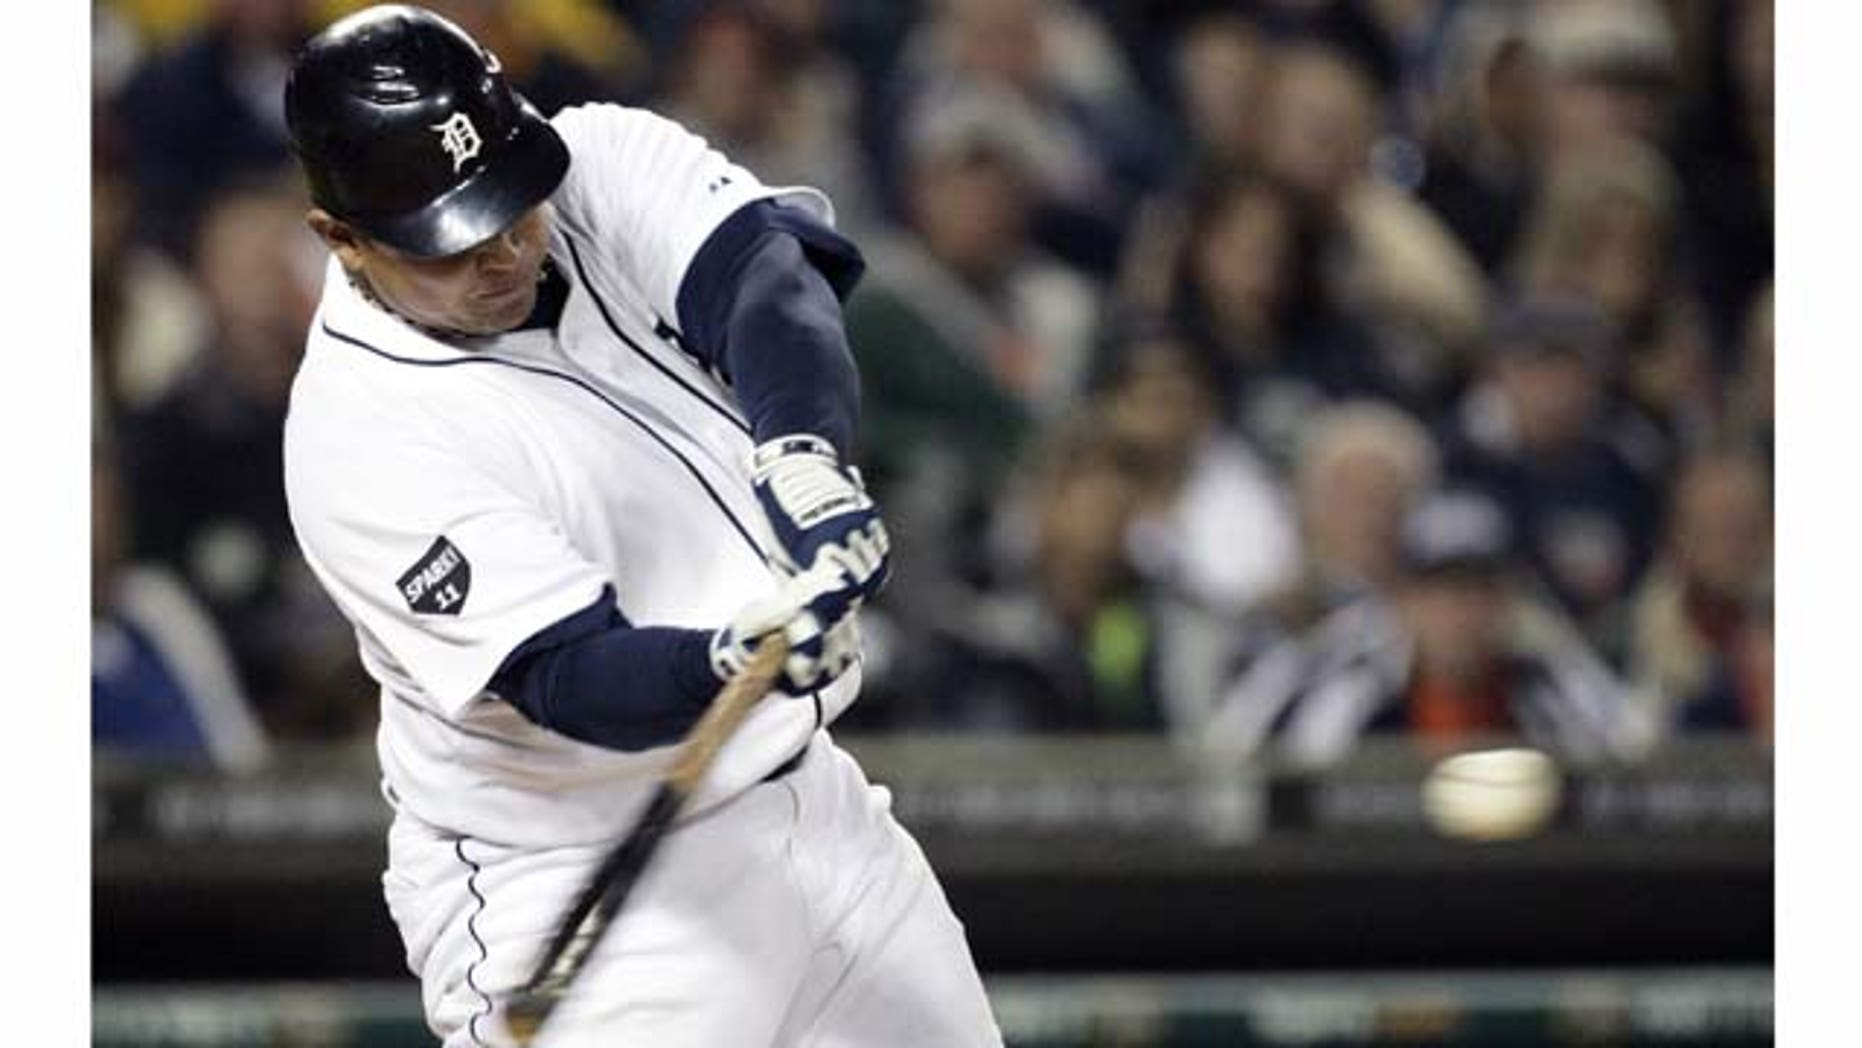 Detroit Tigers' Miguel Cabrera hits a solo home run against the Cleveland Indians in the sixth inning of a baseball game Tuesday, Sept. 27, 2011 in Detroit. (AP Photo/Duane Burleson)